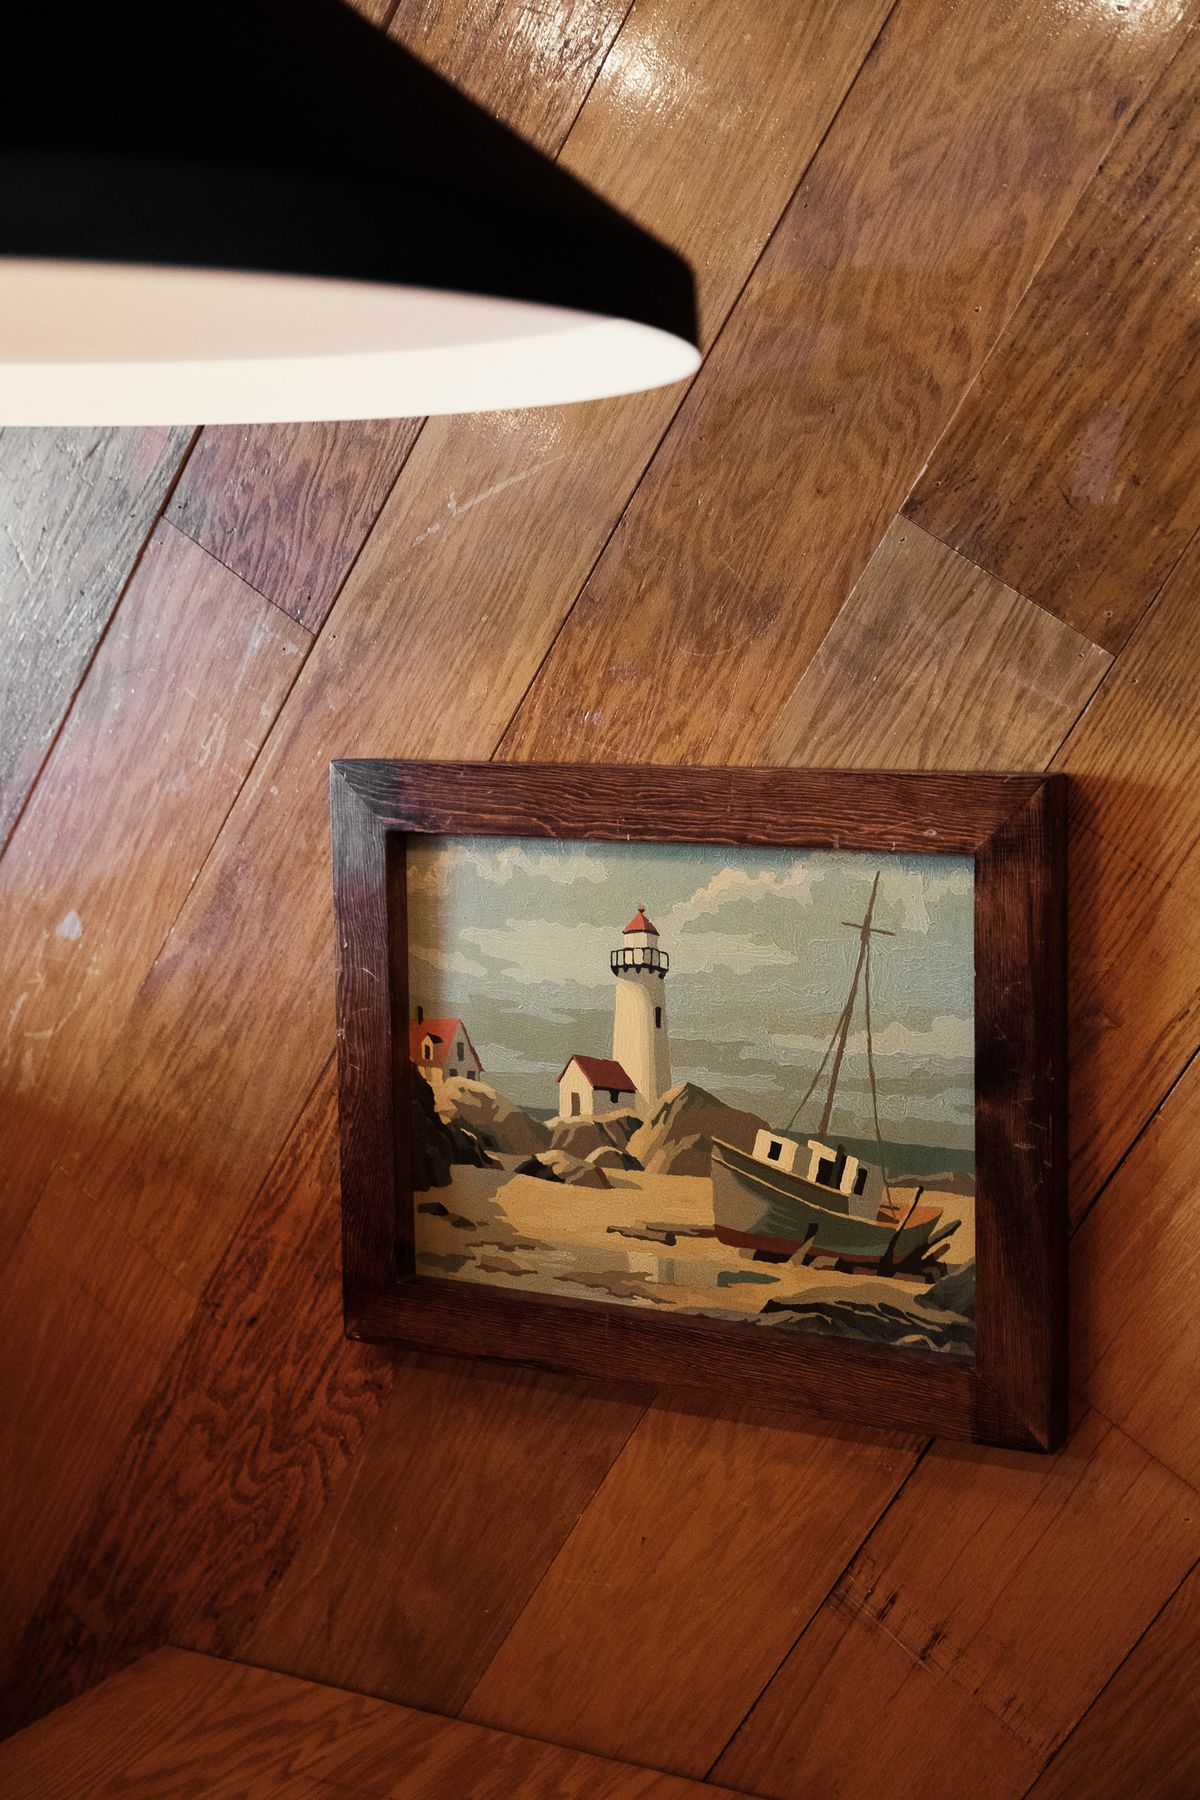 A painting of ships and a lighthouse in a wood frame against wood paneling in a booth at Michigan & Trumbull.